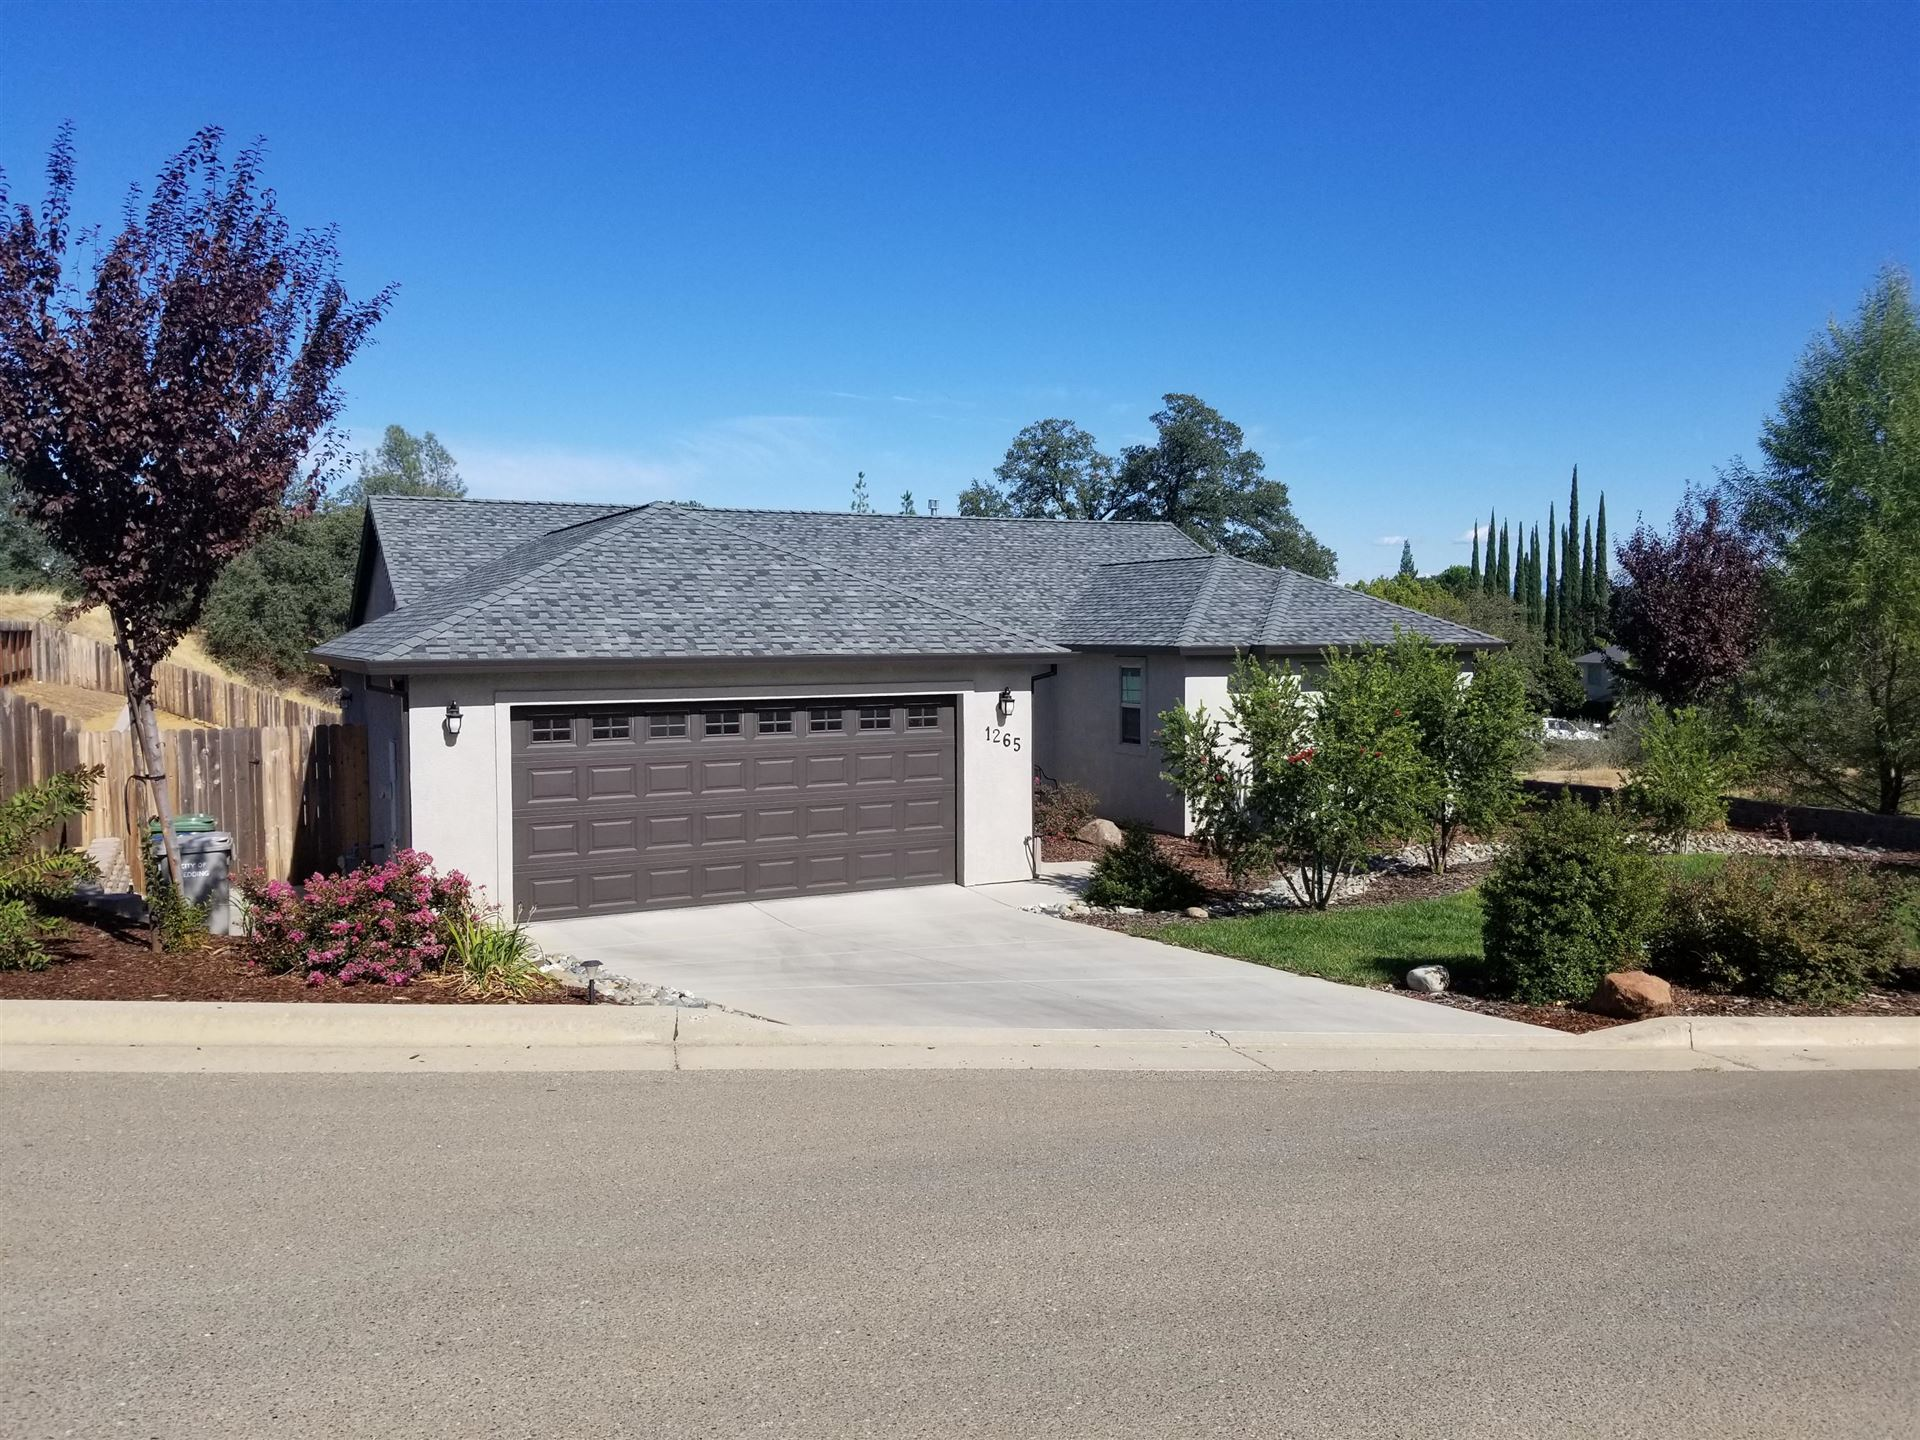 1265 Lombard Trl, Redding, CA 96001 - MLS#: 19-5158